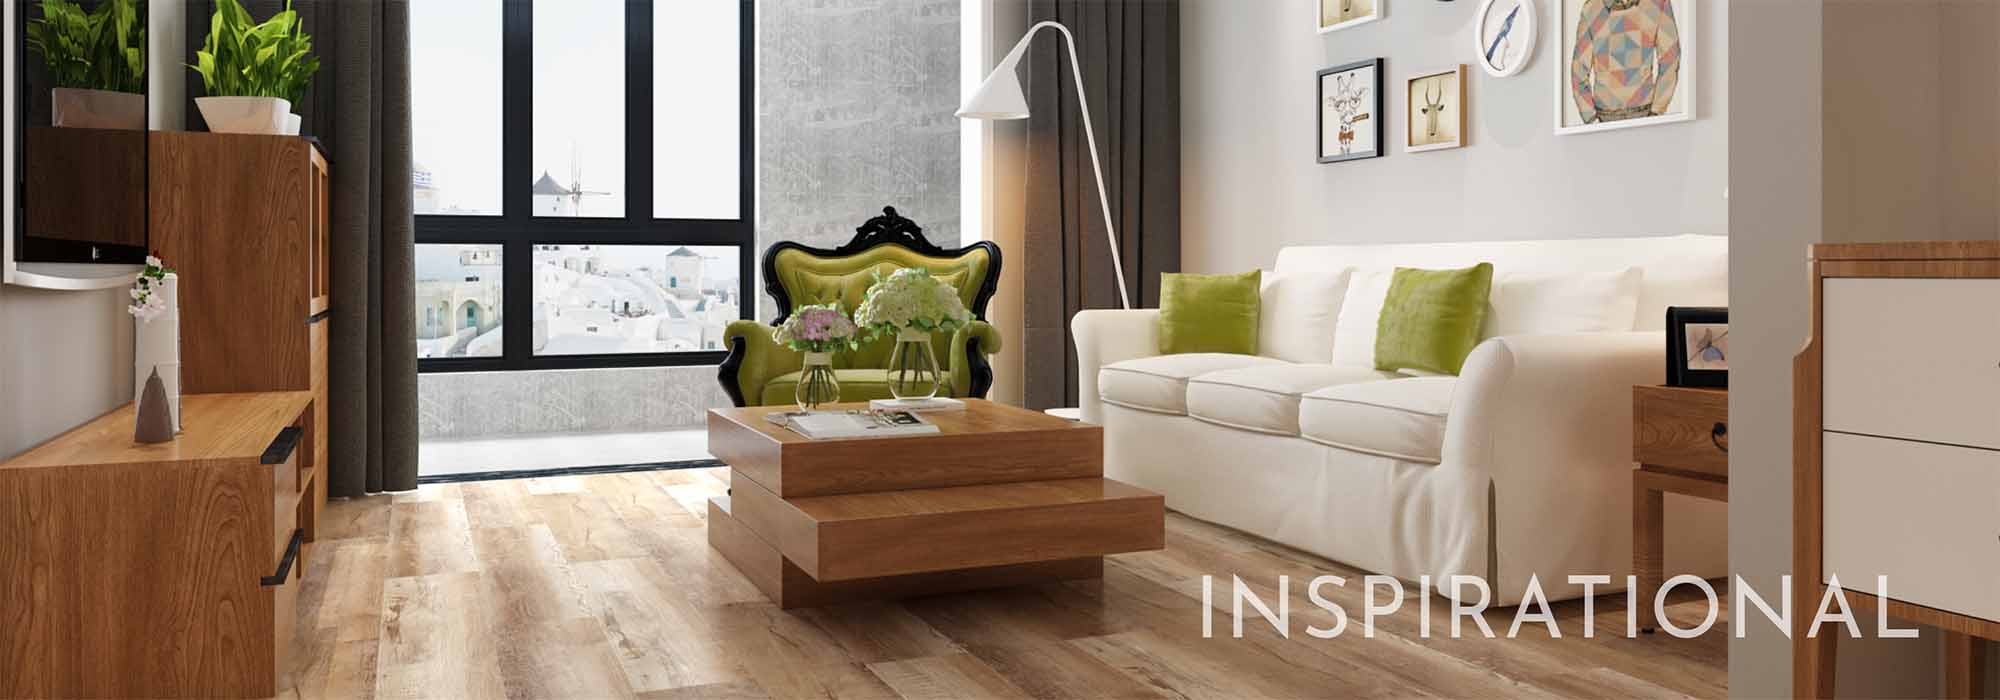 Calgary Canada Flooring Supplier | Natural Wood Flooring | Inspirational